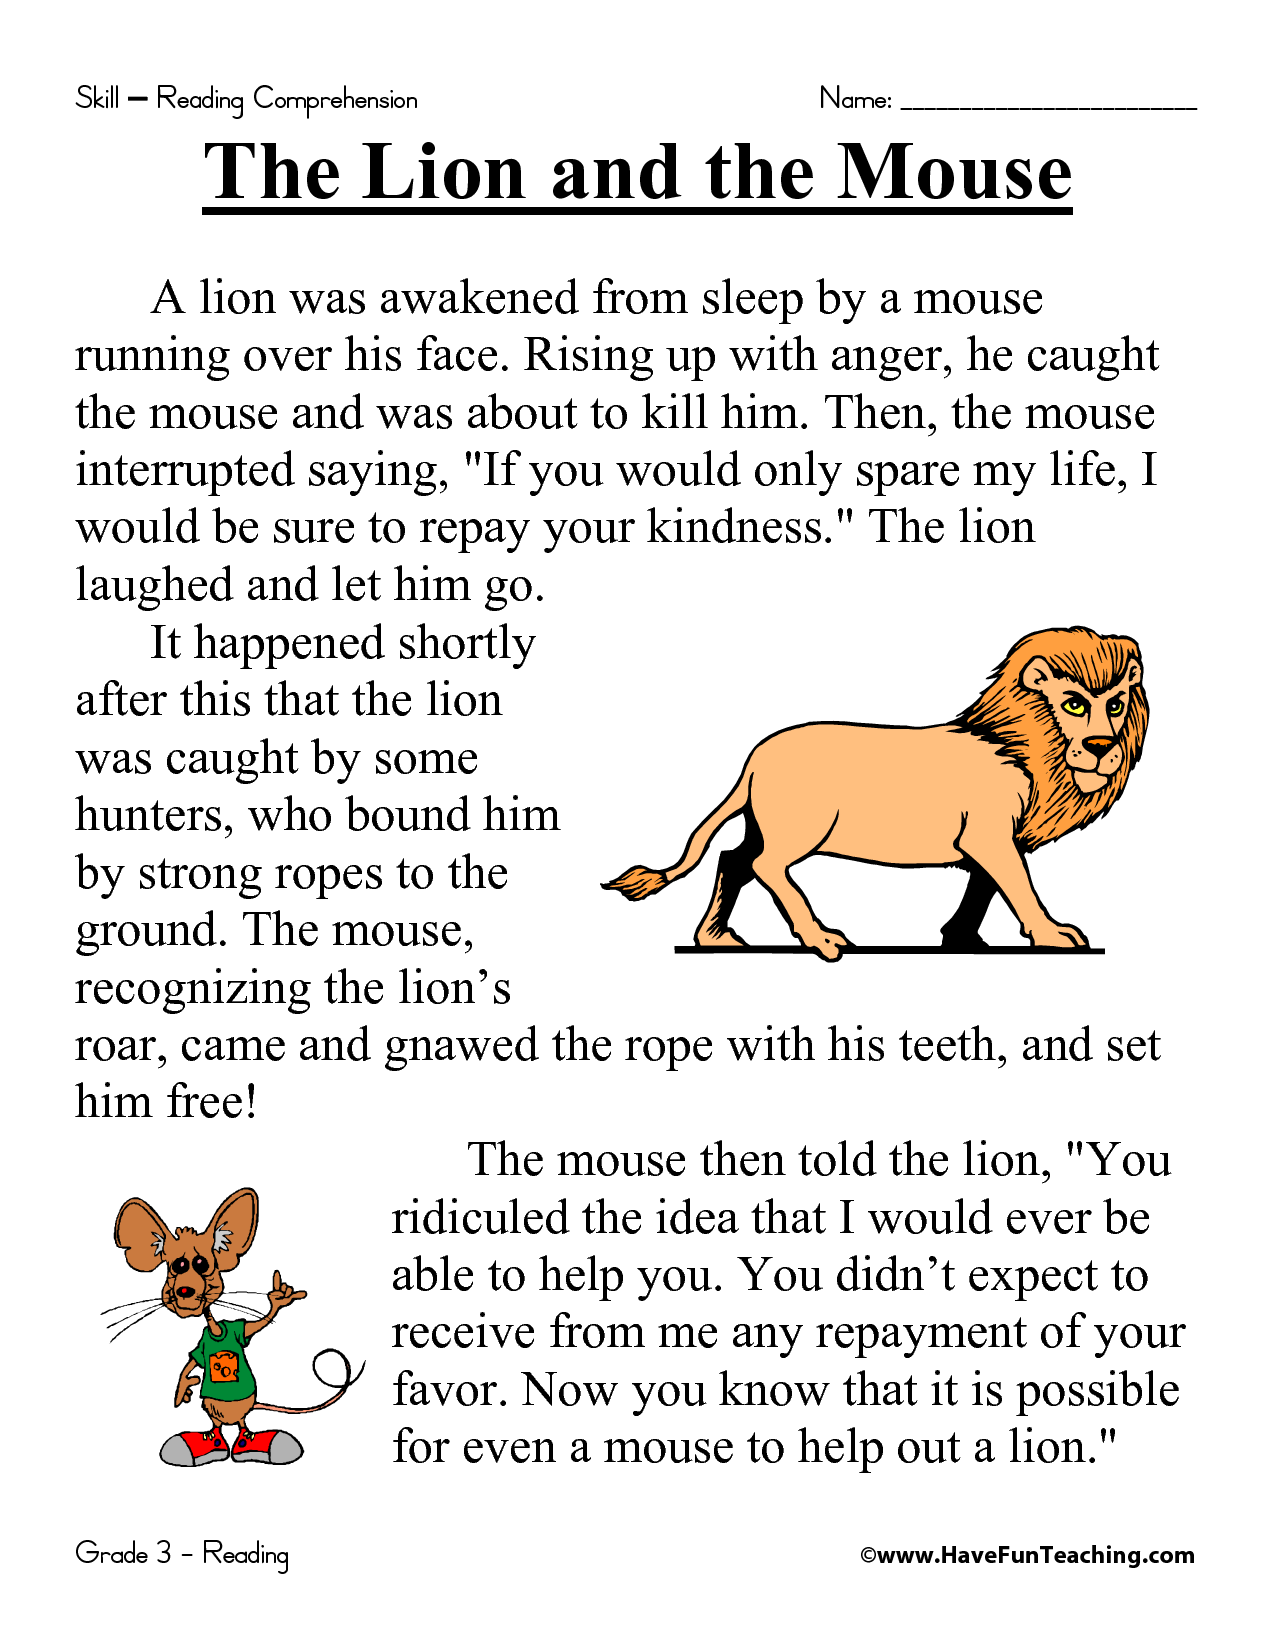 Free Worksheet Free Fifth Grade Reading Comprehension Worksheets first grade reading comprehension worksheets the lion and mouse worksheet